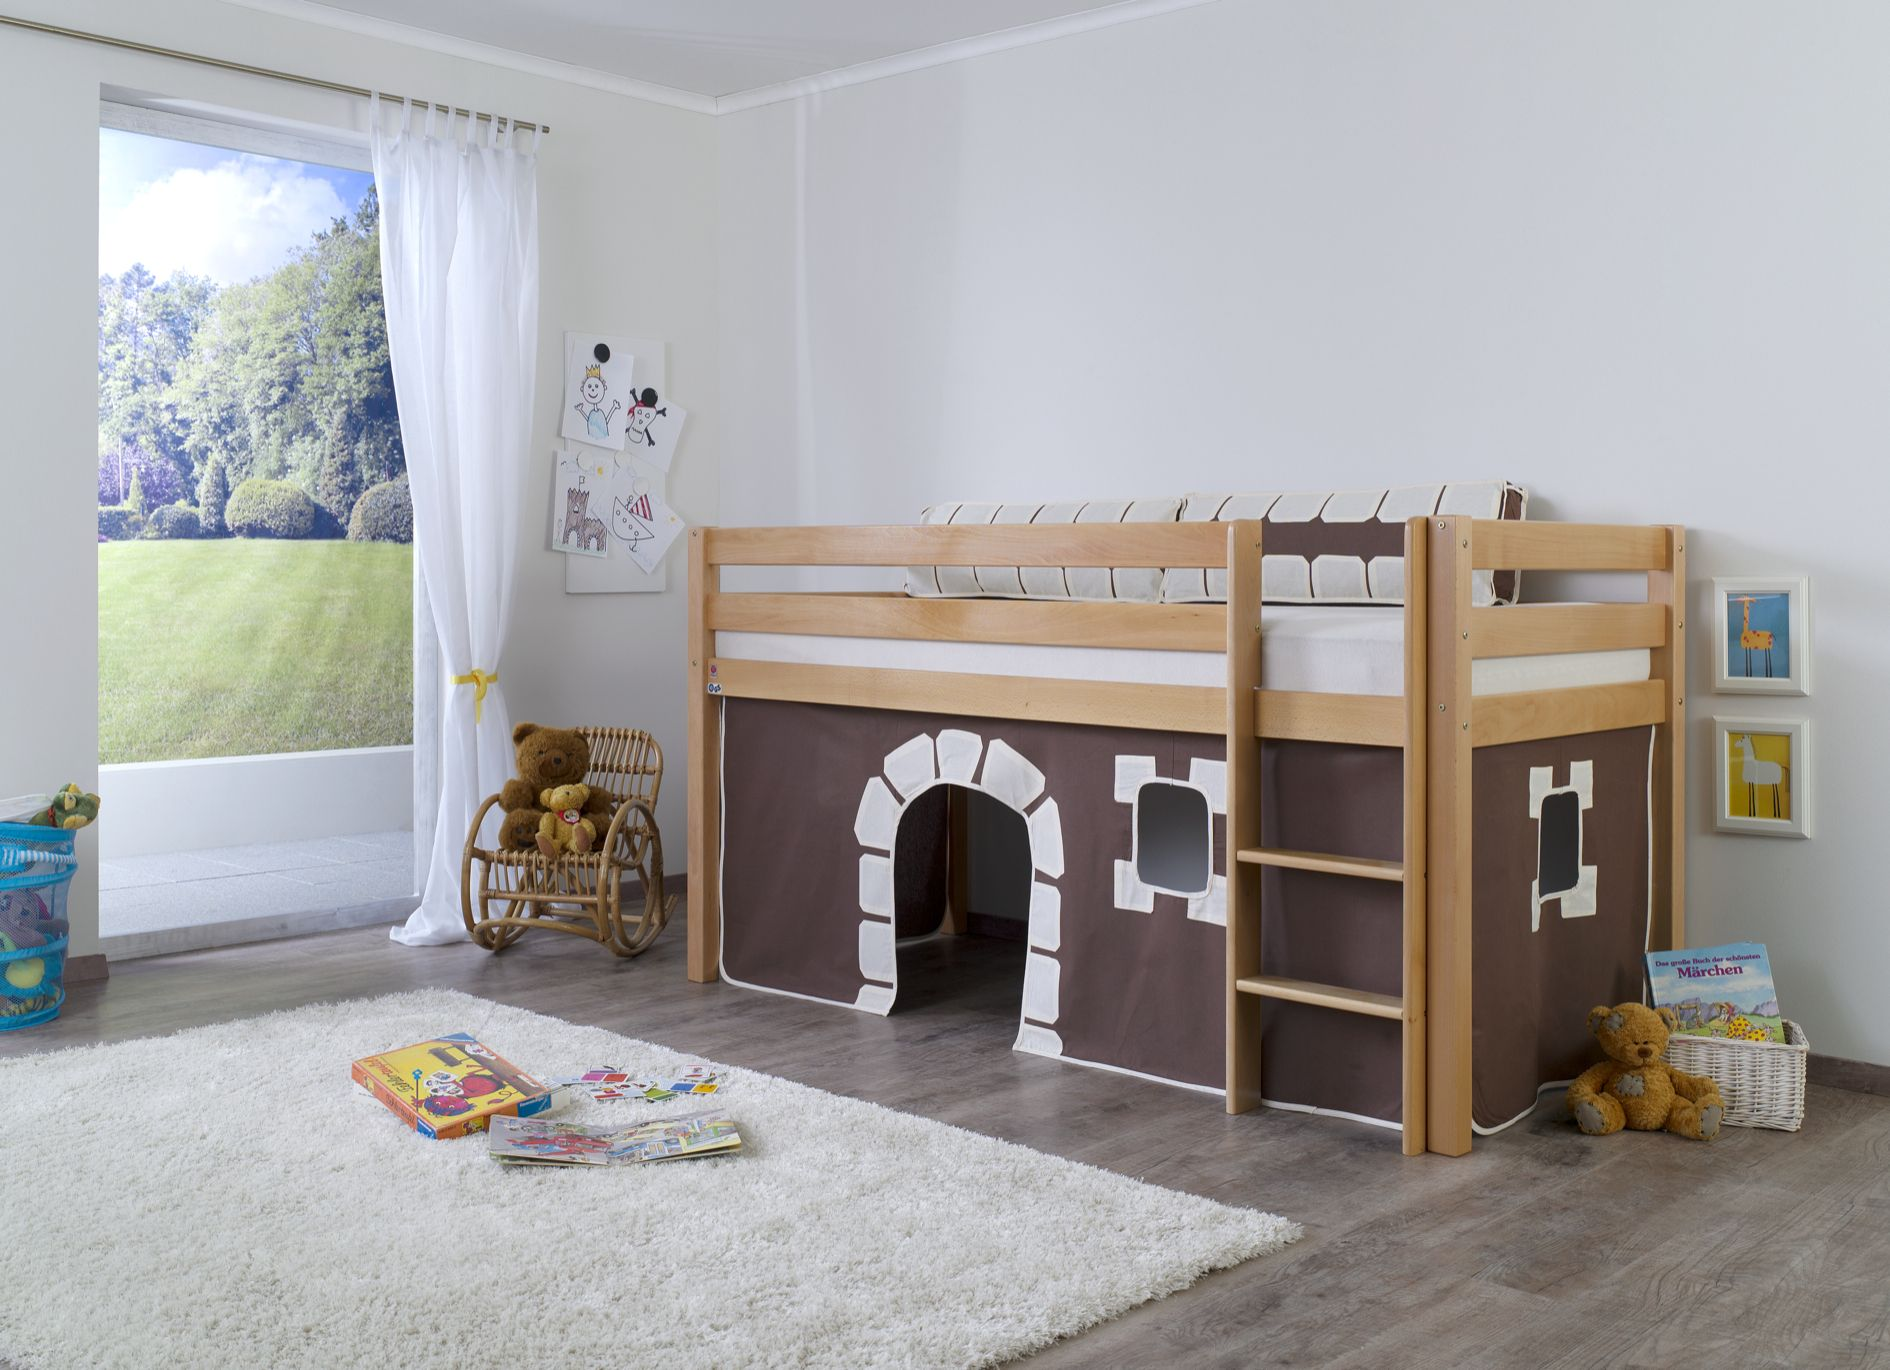 kinderbett ritterburg spielbett hochbett holzbett kinder bett buche 90x200cm. Black Bedroom Furniture Sets. Home Design Ideas